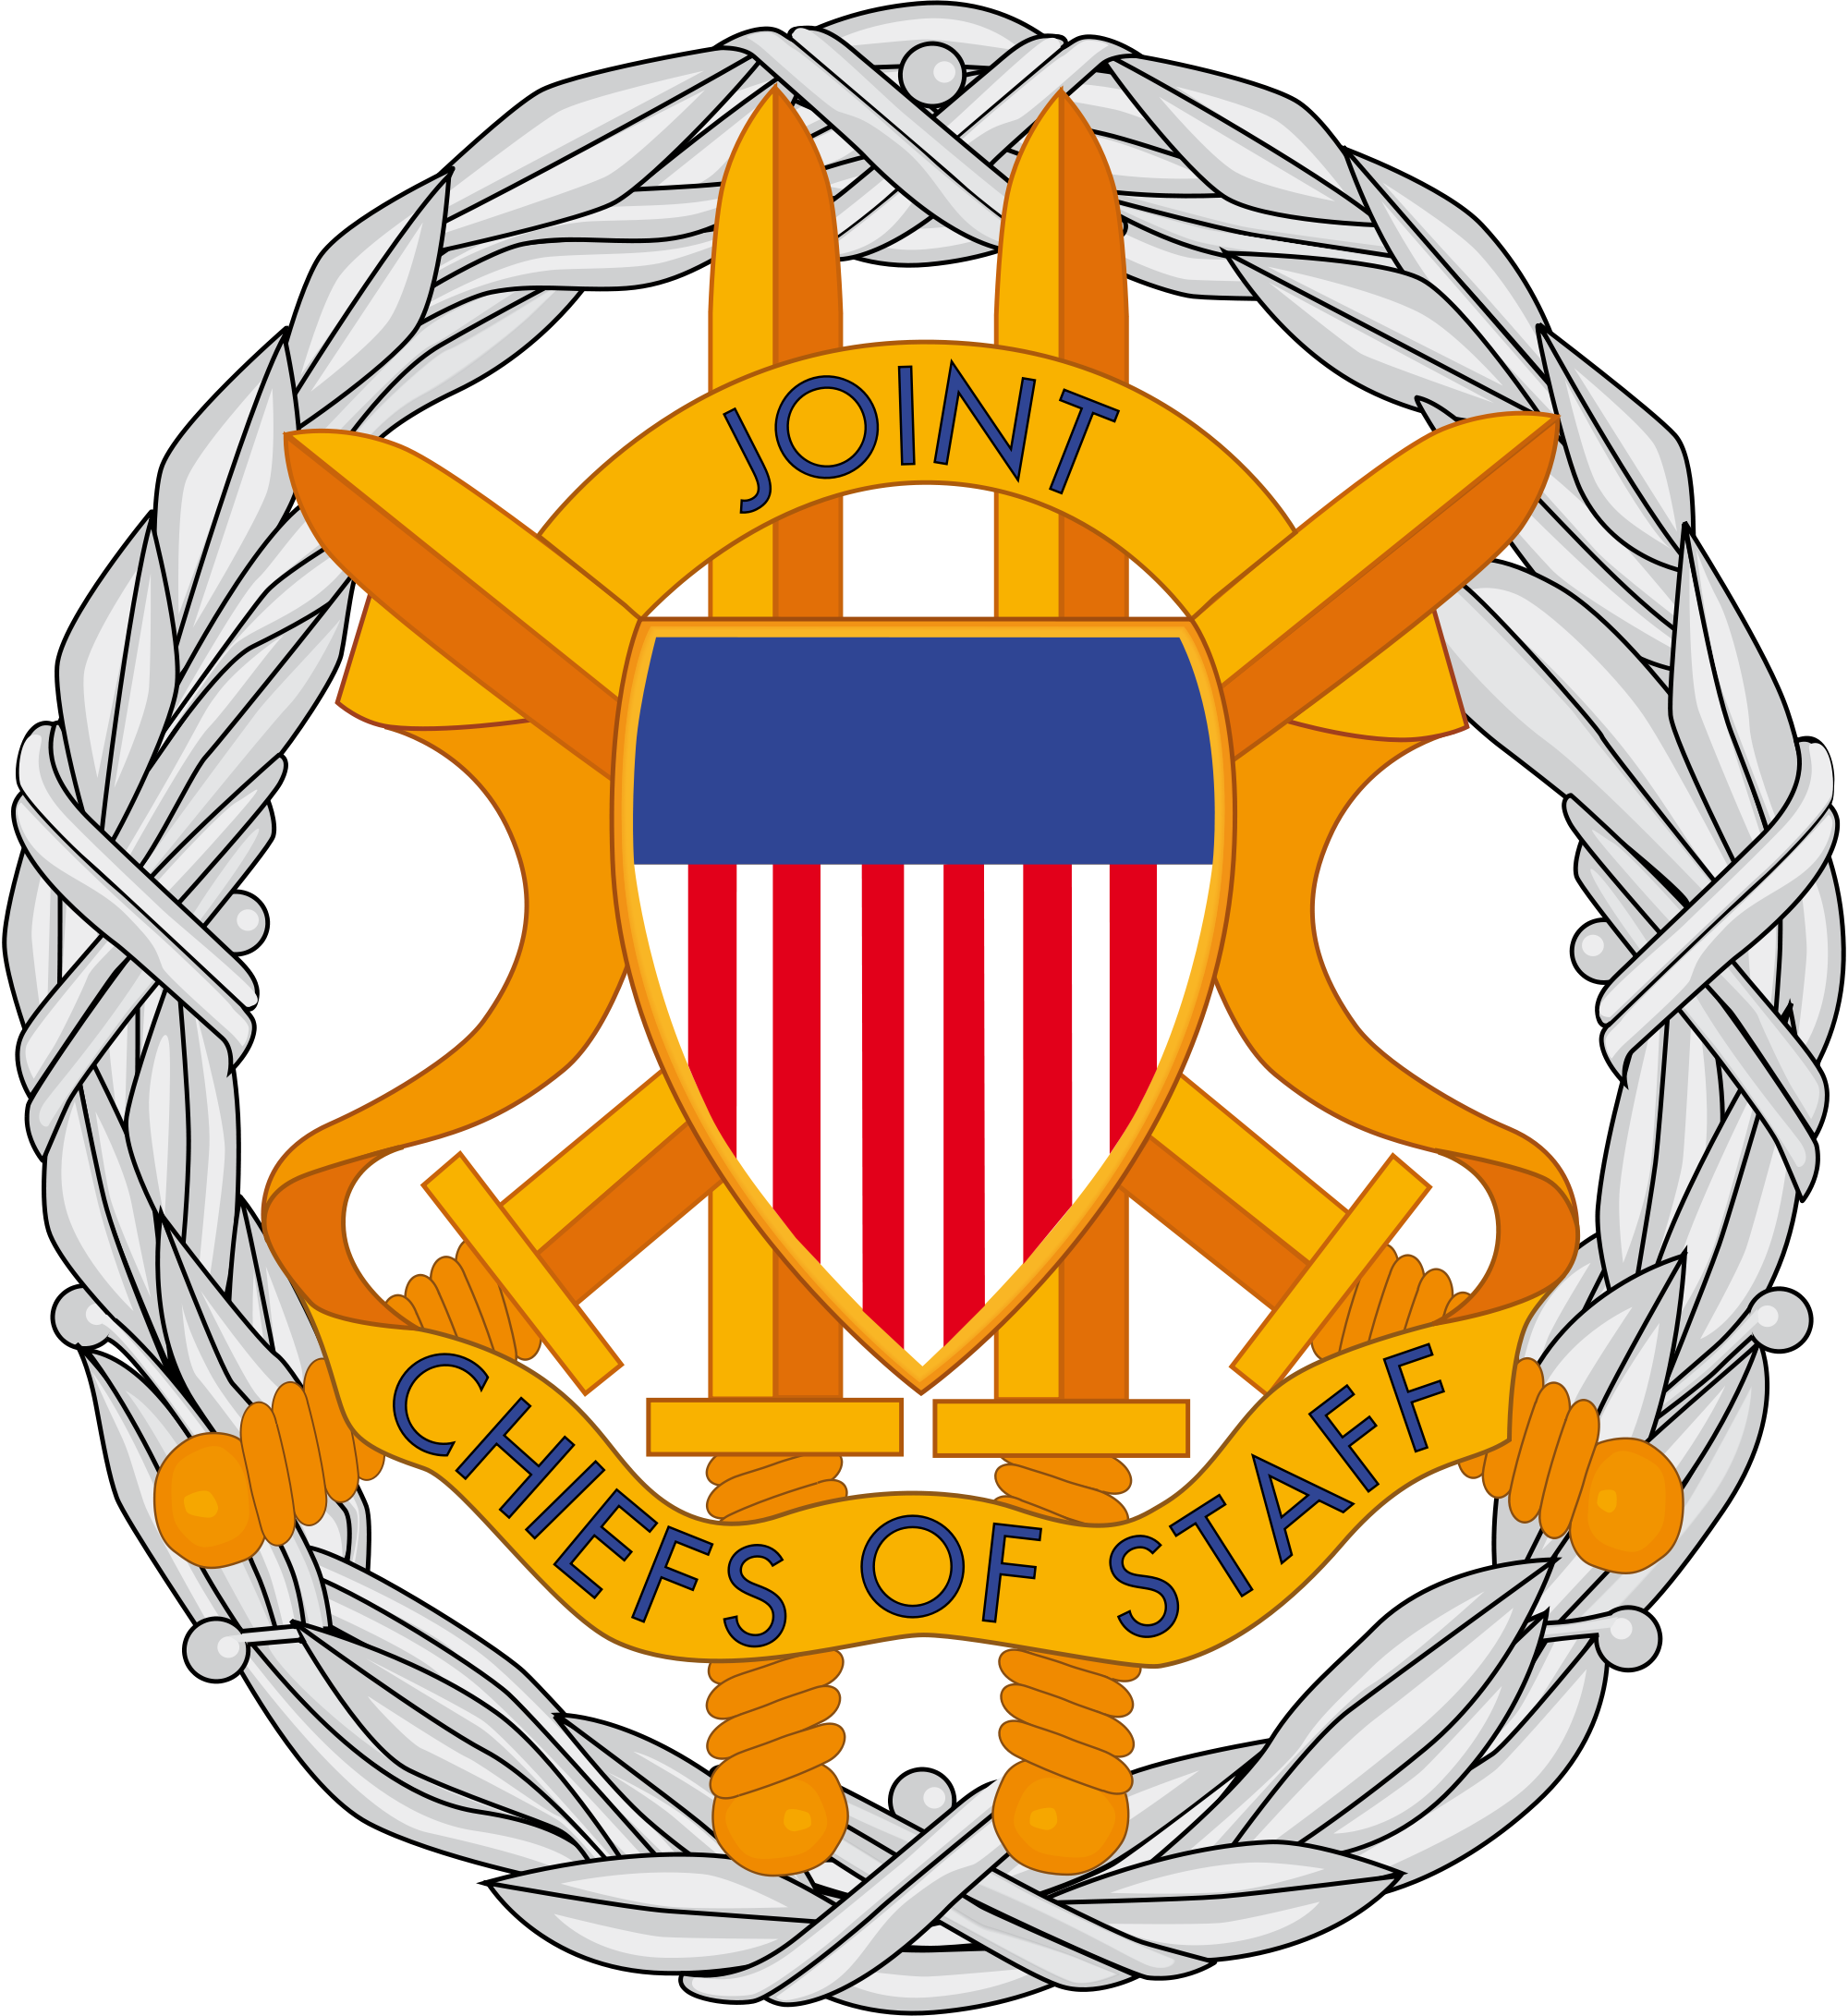 Usmc svg decor. Joint chiefs of staff